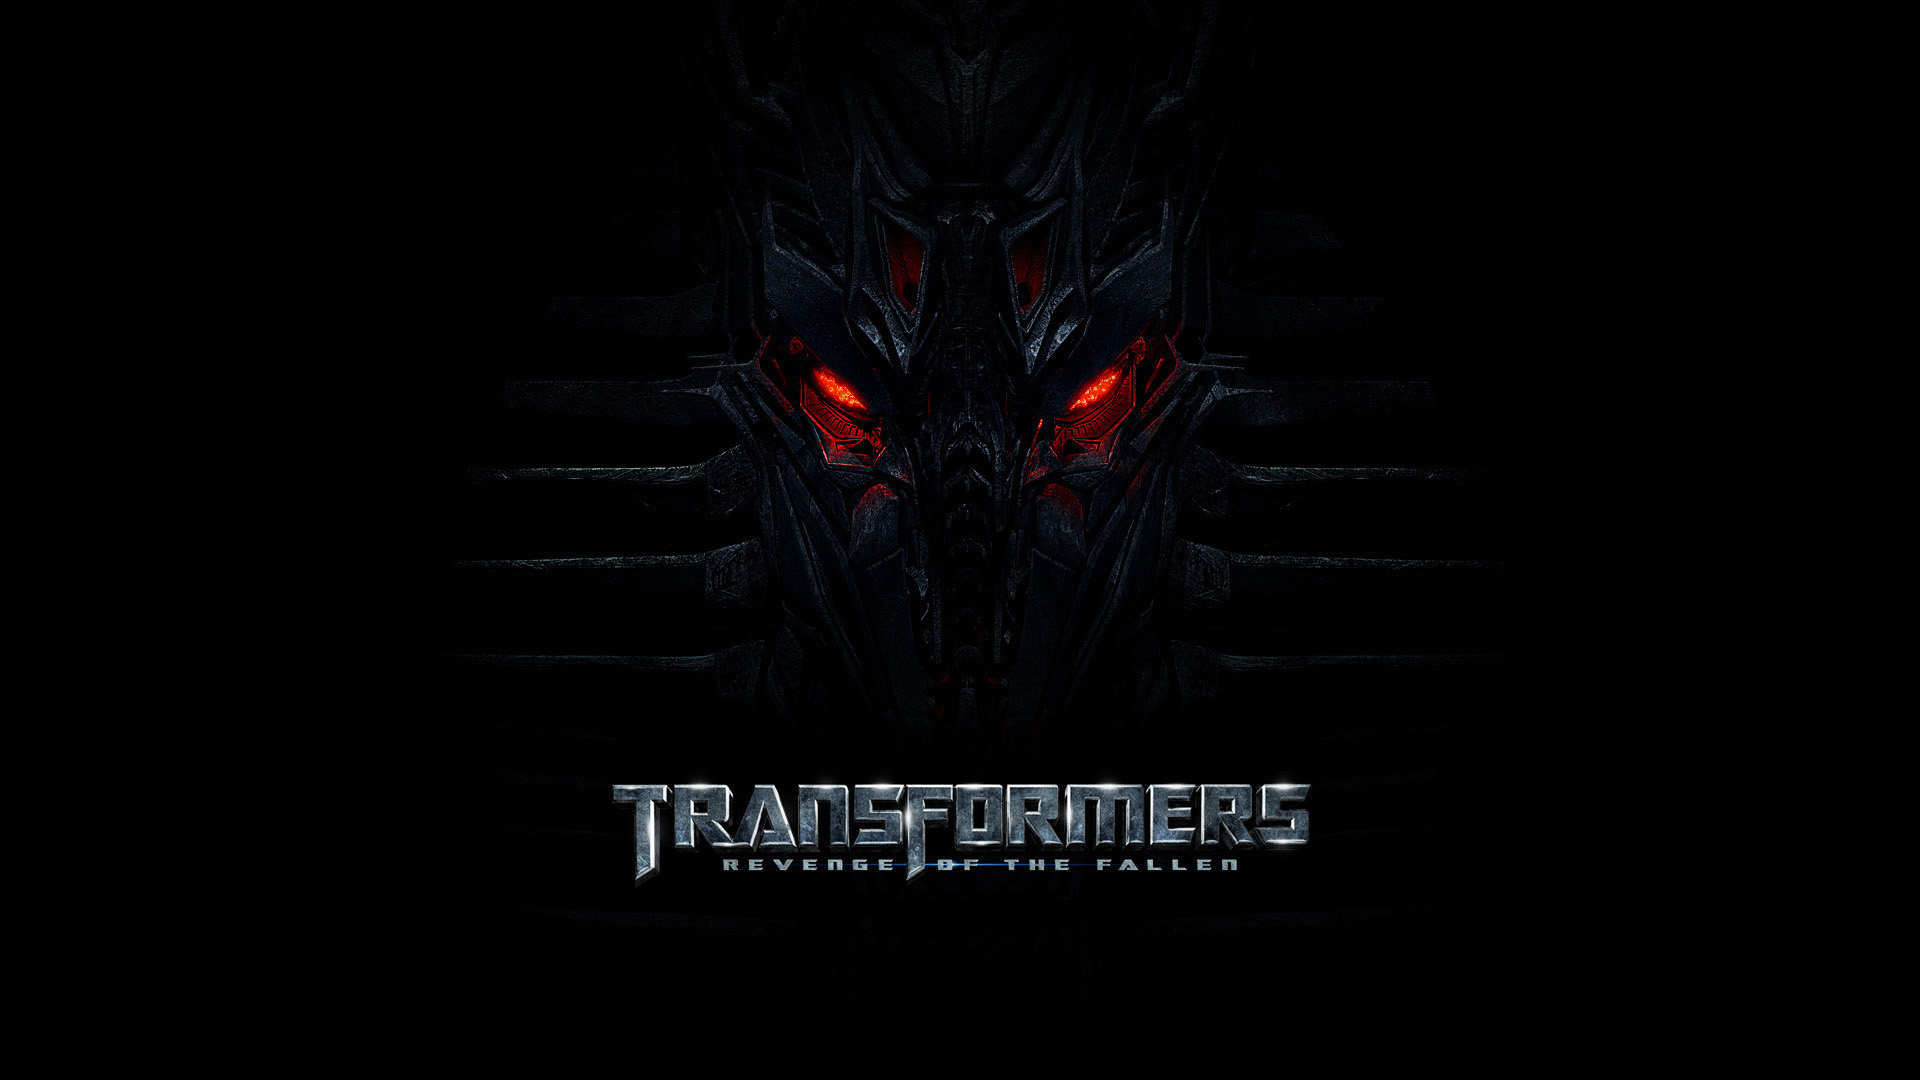 14592 download wallpaper Cinema, Transformers screensavers and pictures for free